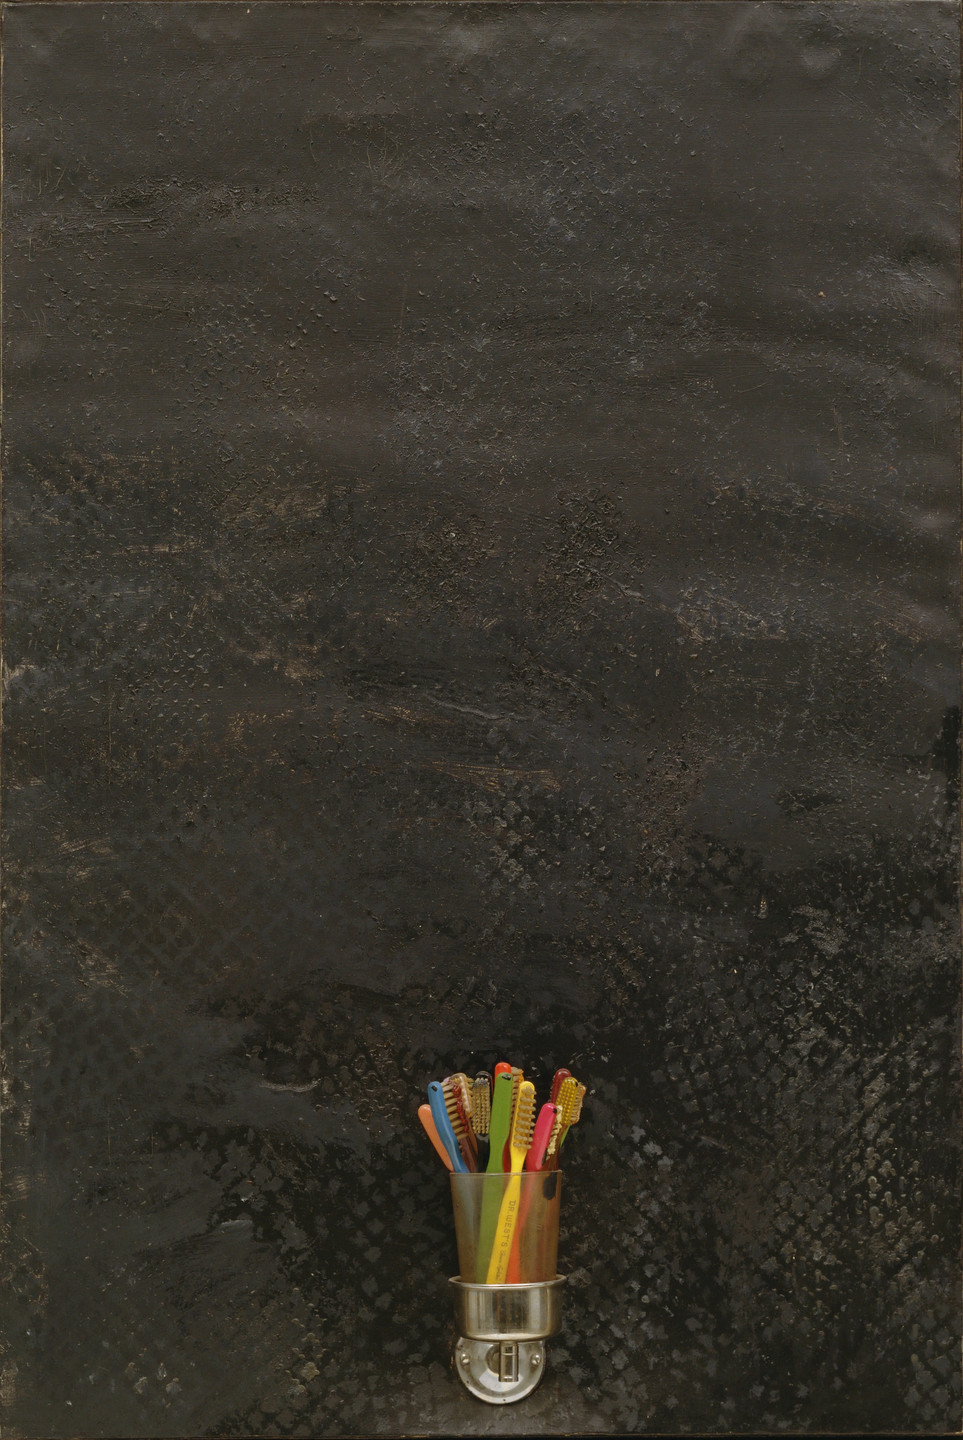 Jim Dine. Still Life Painting. 1962